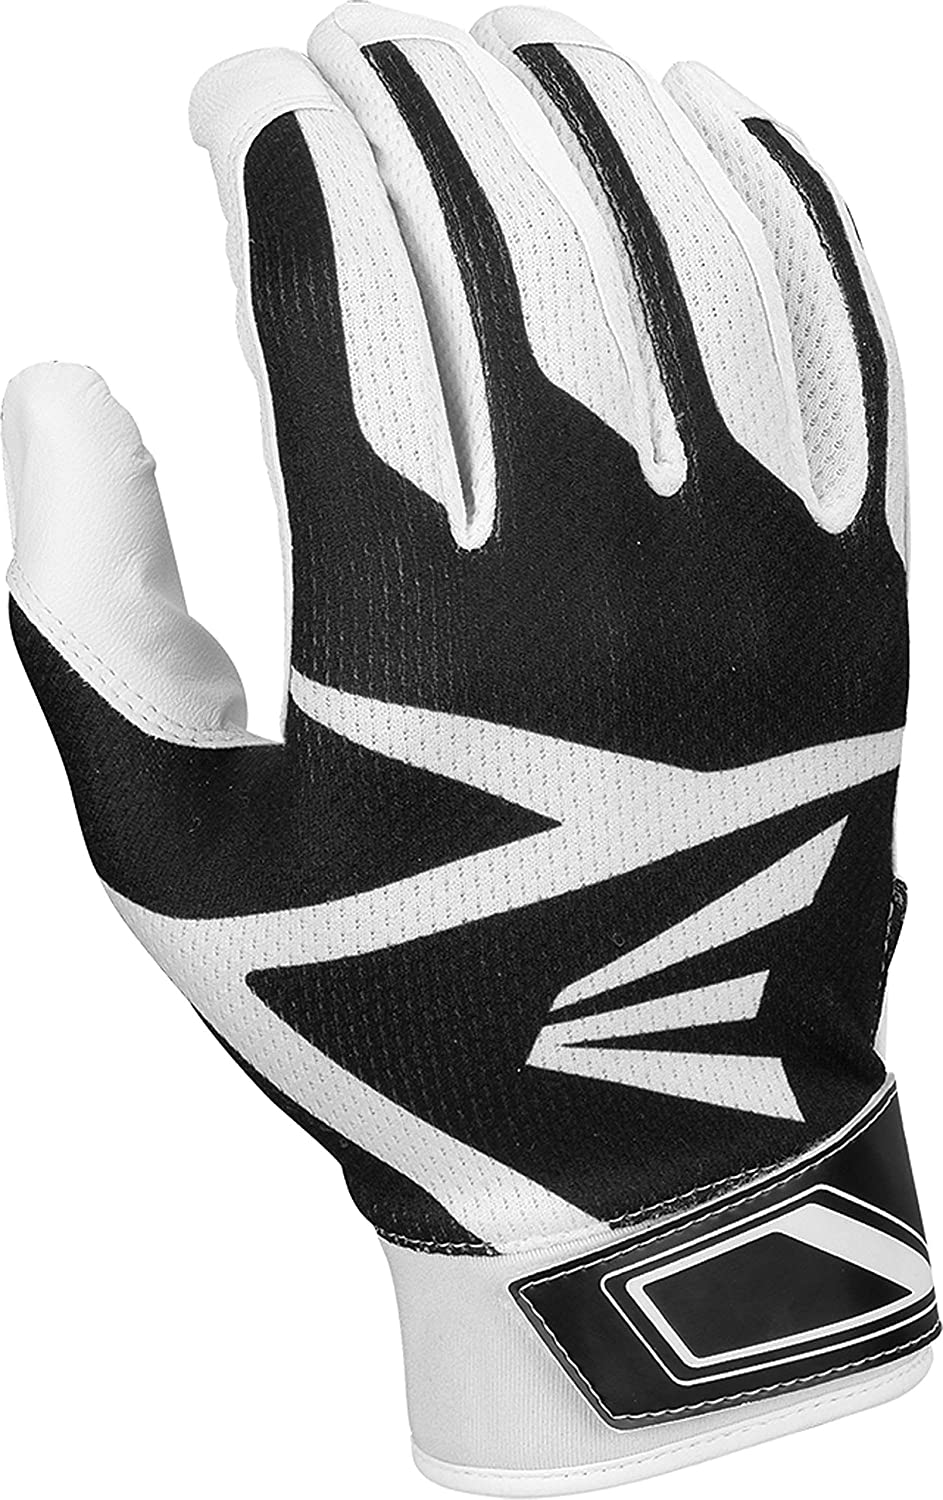 Easton Z3/ Google Search Gants de Baseball